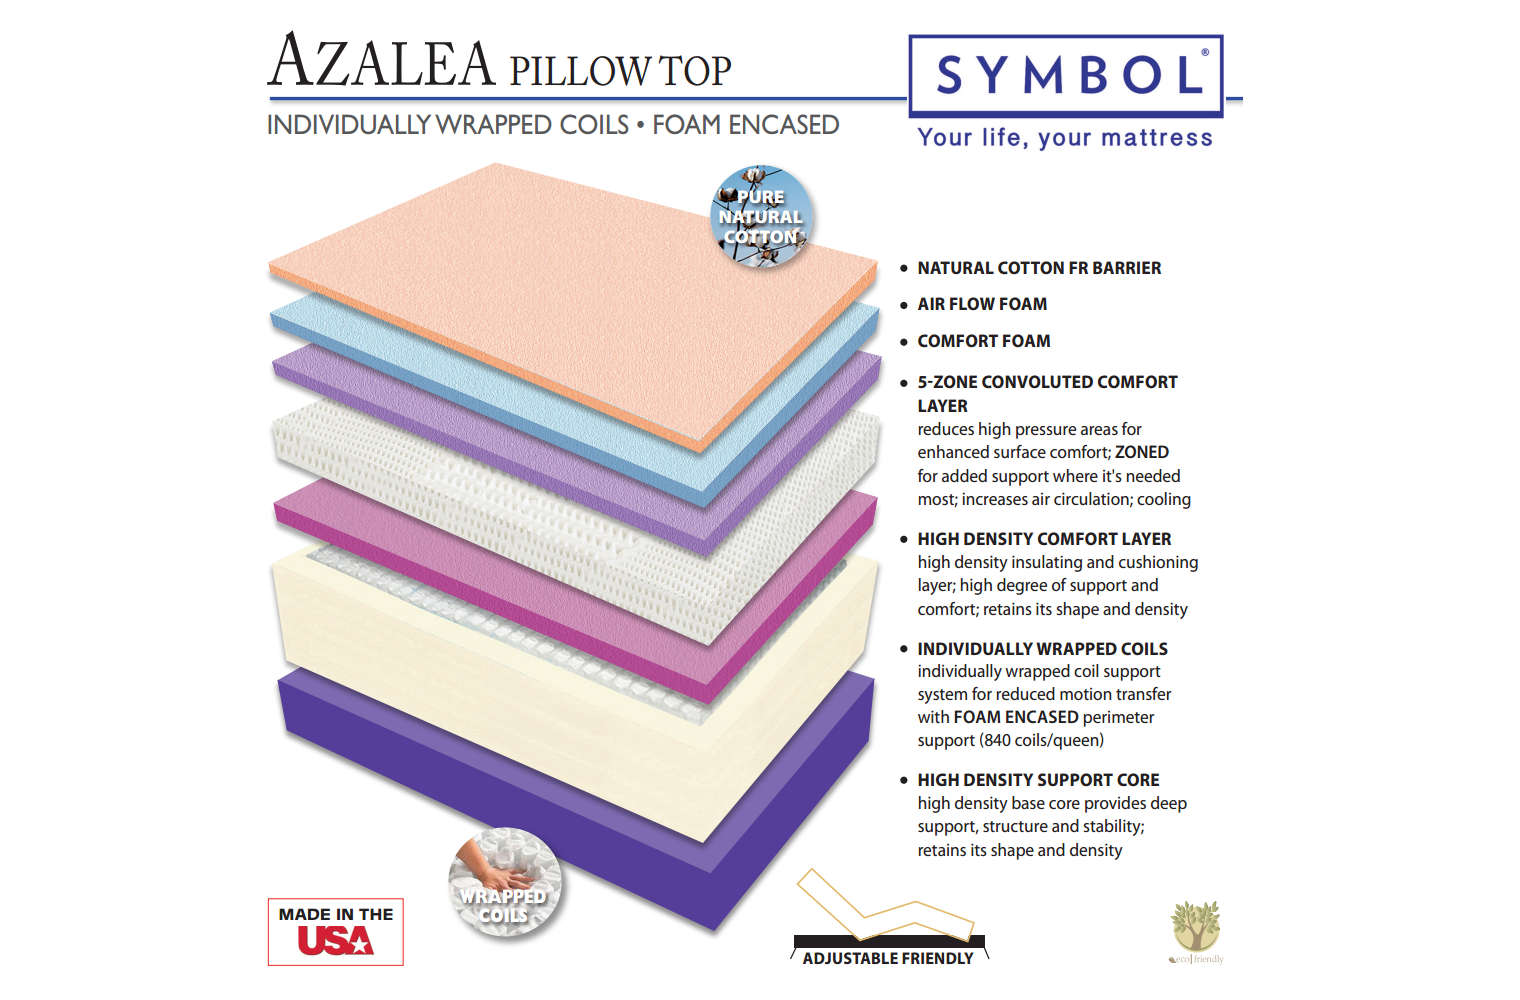 How Much Does It Cost To Ship A Mattress Azalea Pillow Top Affordable Luxury Mattress